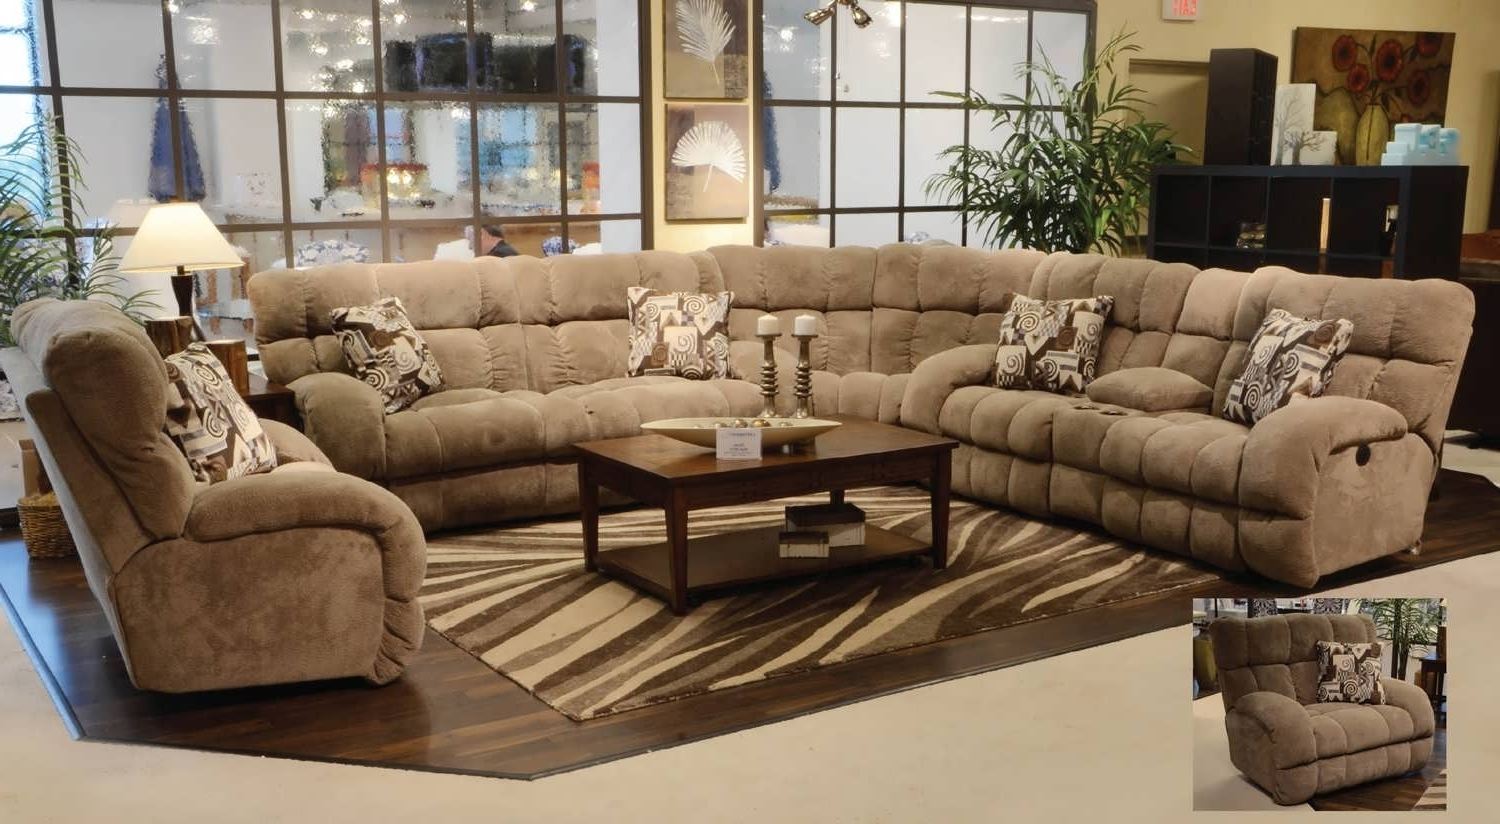 Small Sectionals With Chaise Throughout 2018 Sofa : Small Chaise Sofa Sectional Sofas Large Sectional Black (View 6 of 15)